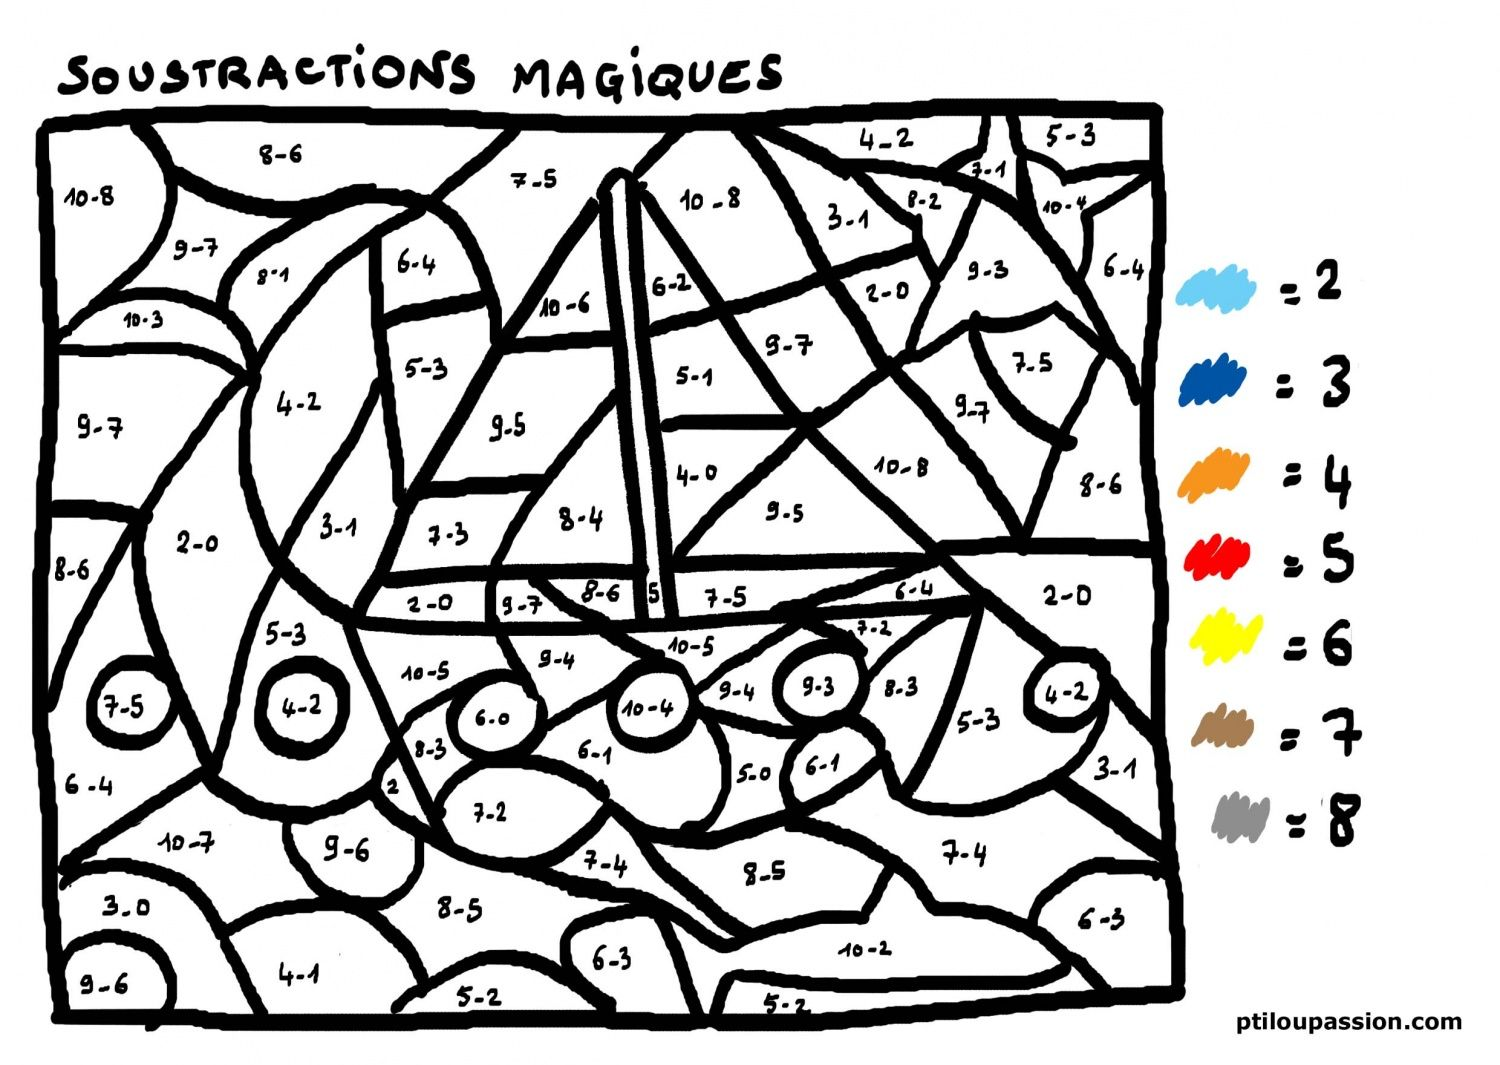 Coloriage Magique Soustraction Maths 4h Pinterest